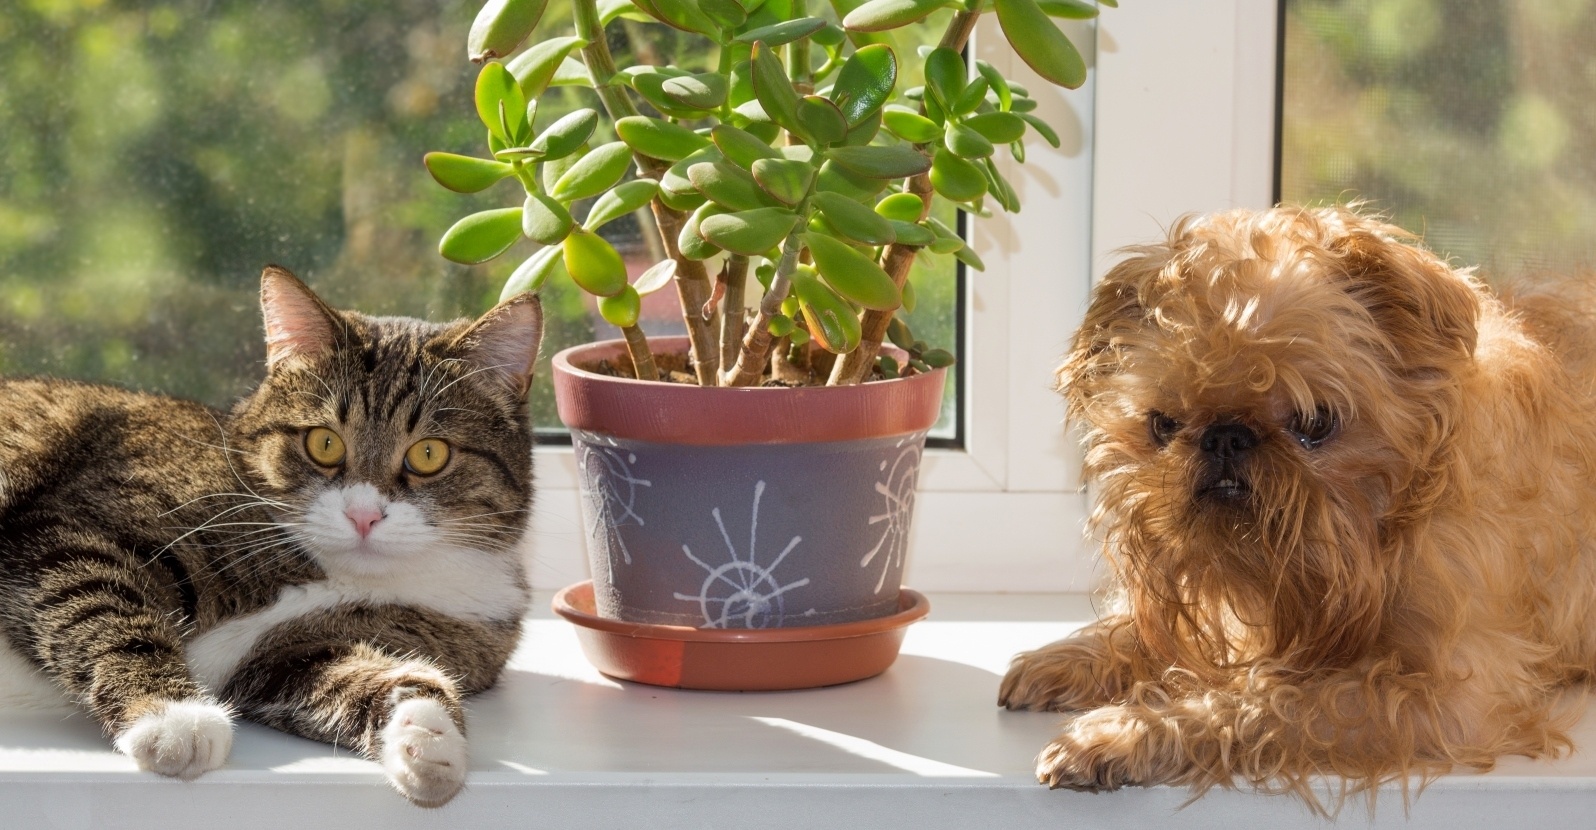 Pet Friendly Houseplants